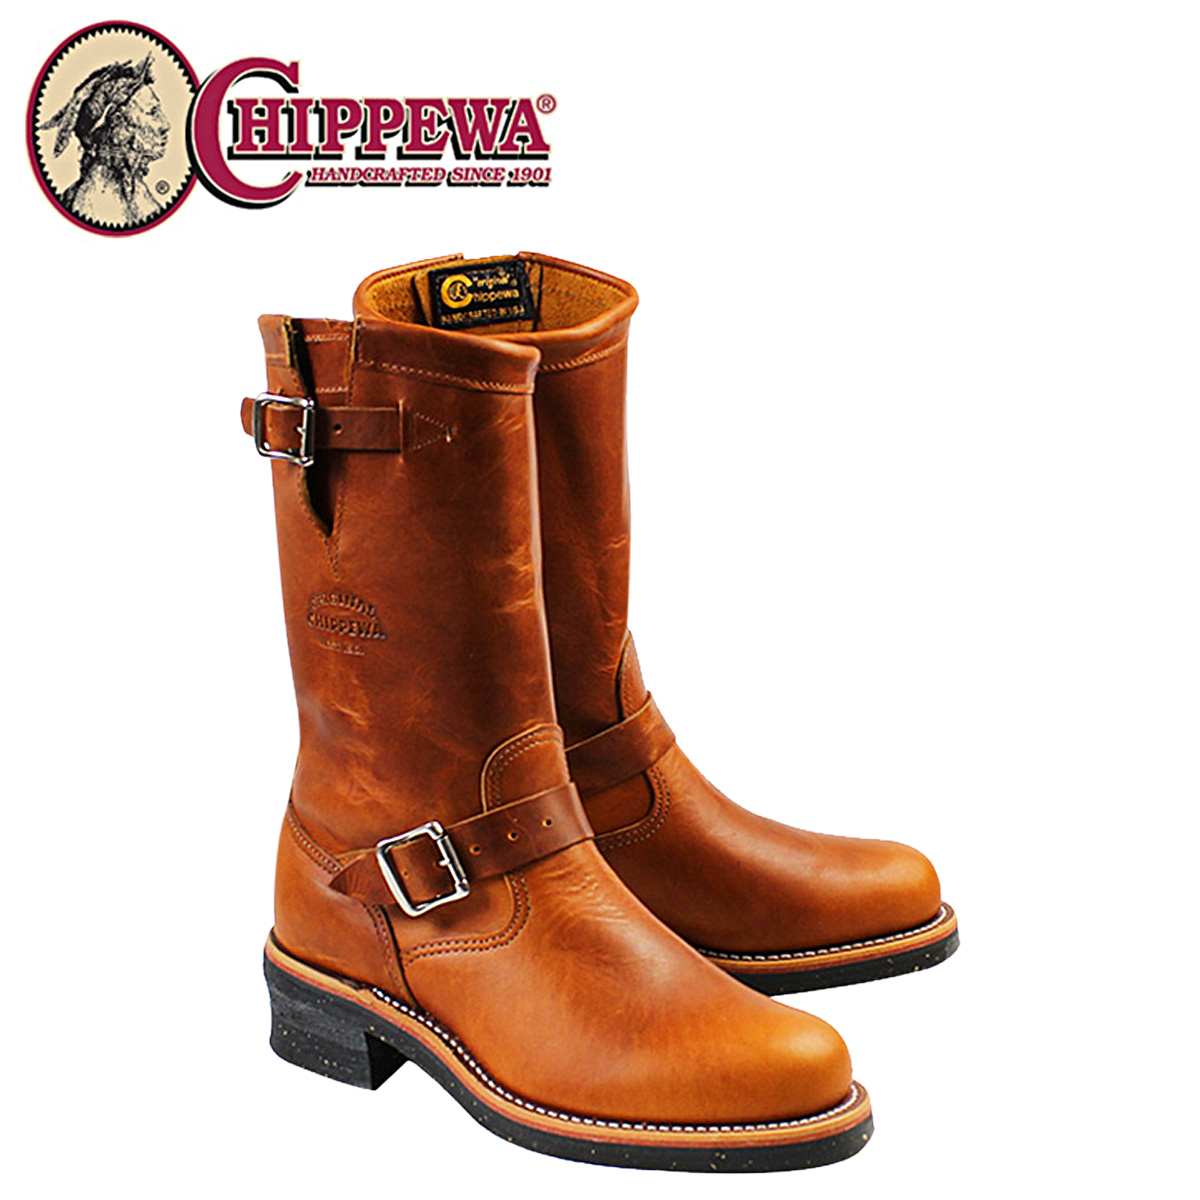 CHIPPEWA チペワ 11INCH TAN RENEGADE PLAIN TOE ENGINEER boots 11 inches plane toe engineer 1901M50 E Wise Chinese noodles with fried vegetables